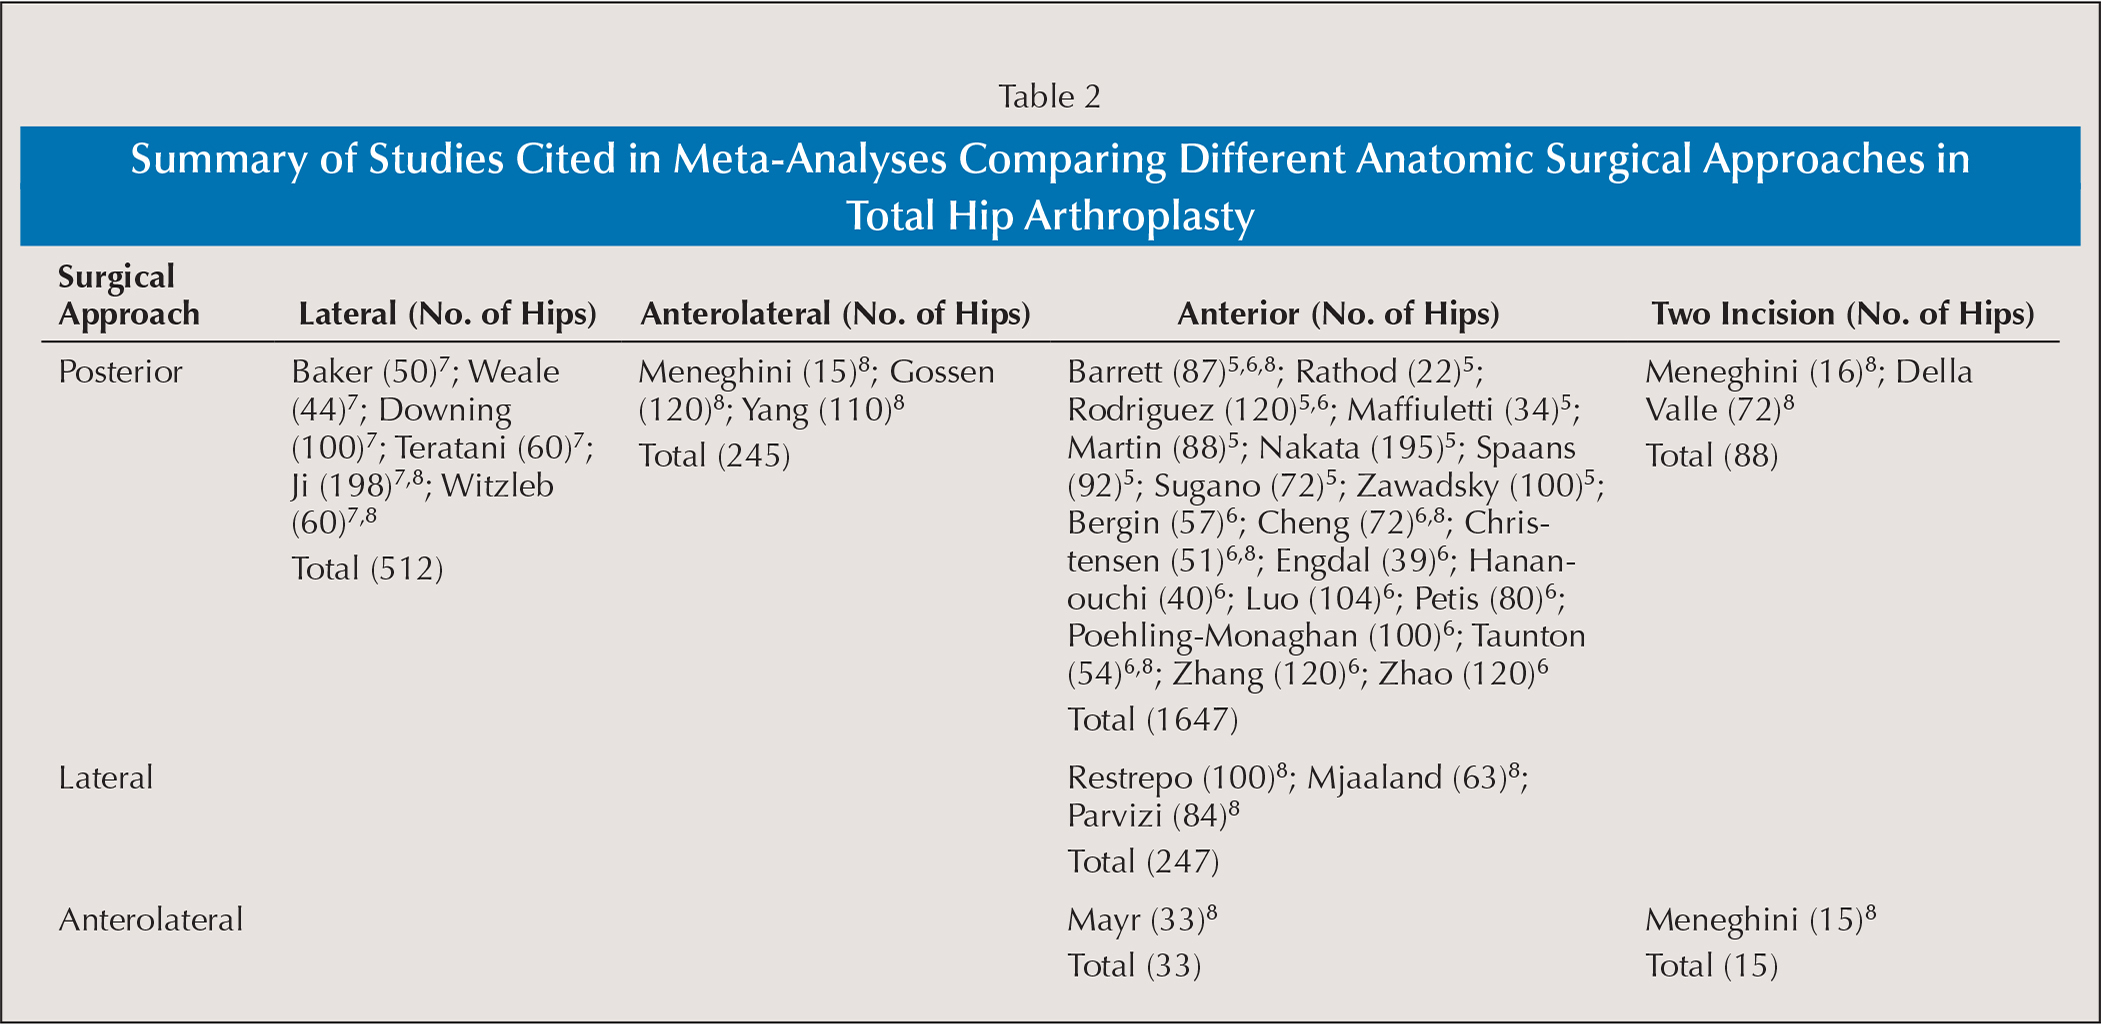 Summary of Studies Cited in Meta-Analyses Comparing Different Anatomic Surgical Approaches in Total Hip Arthroplasty